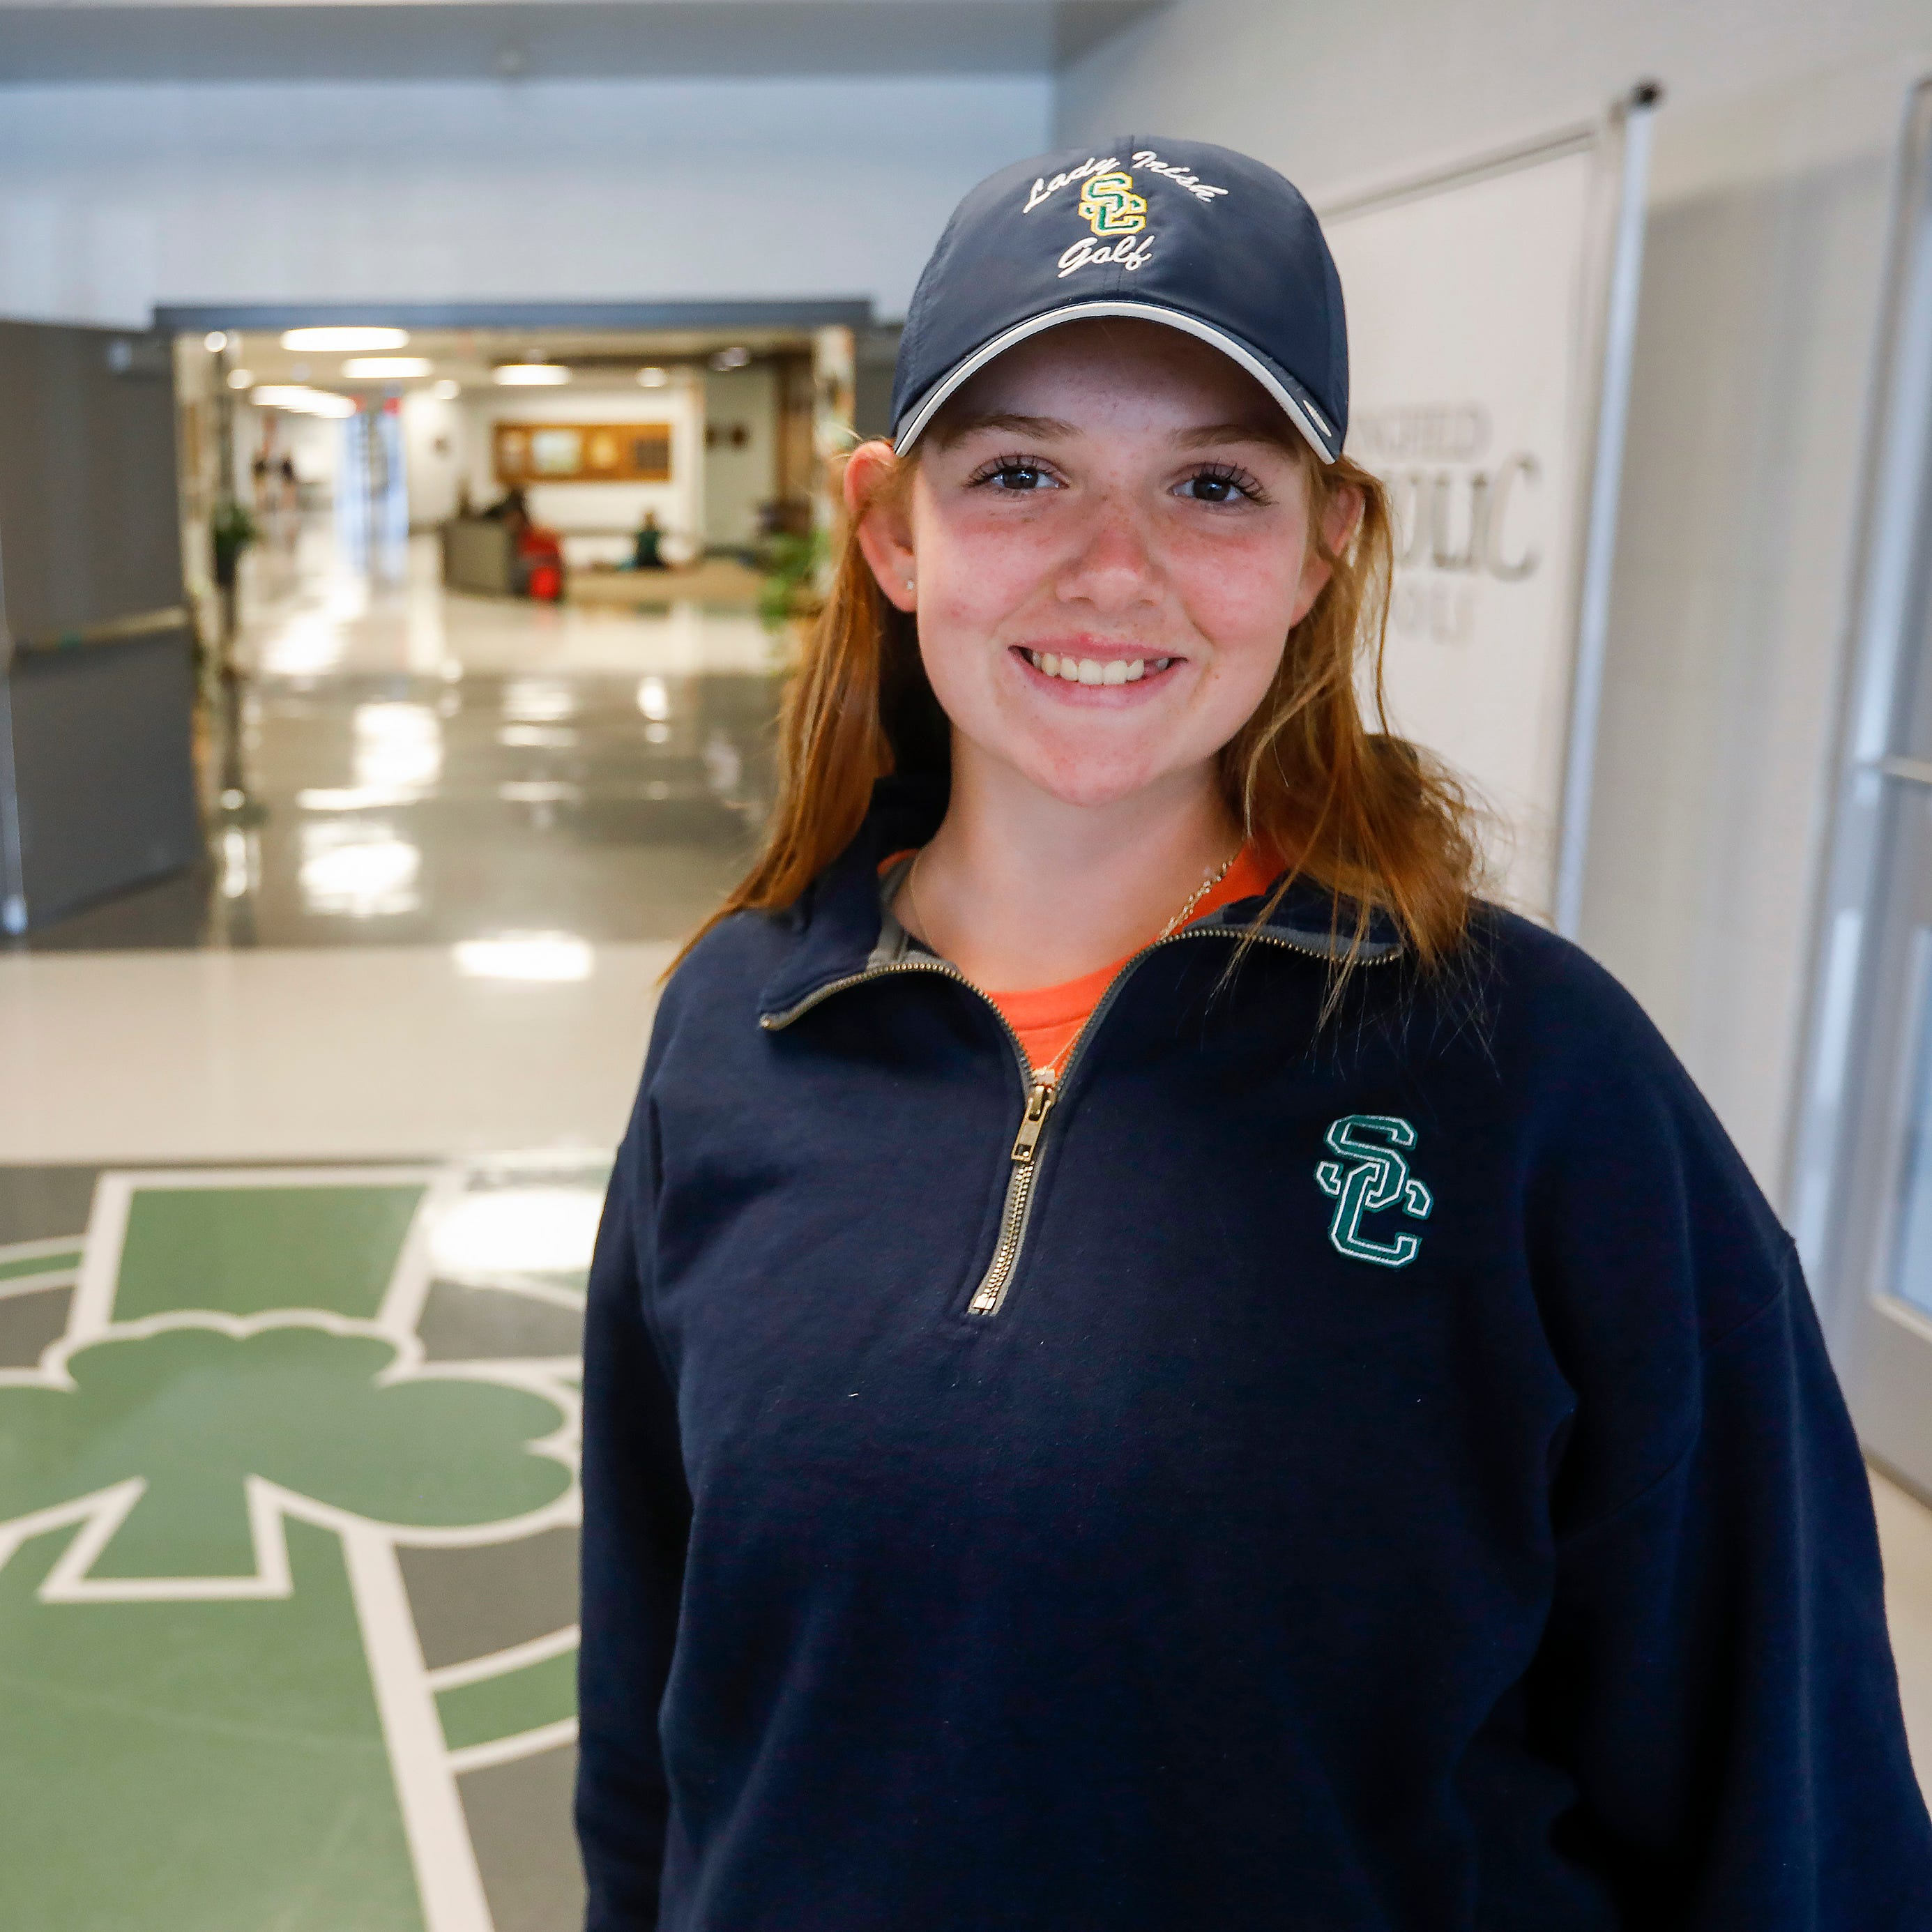 Springfield Catholic's 15-year-old freshman golfing phenom makes U.S. Women's Open